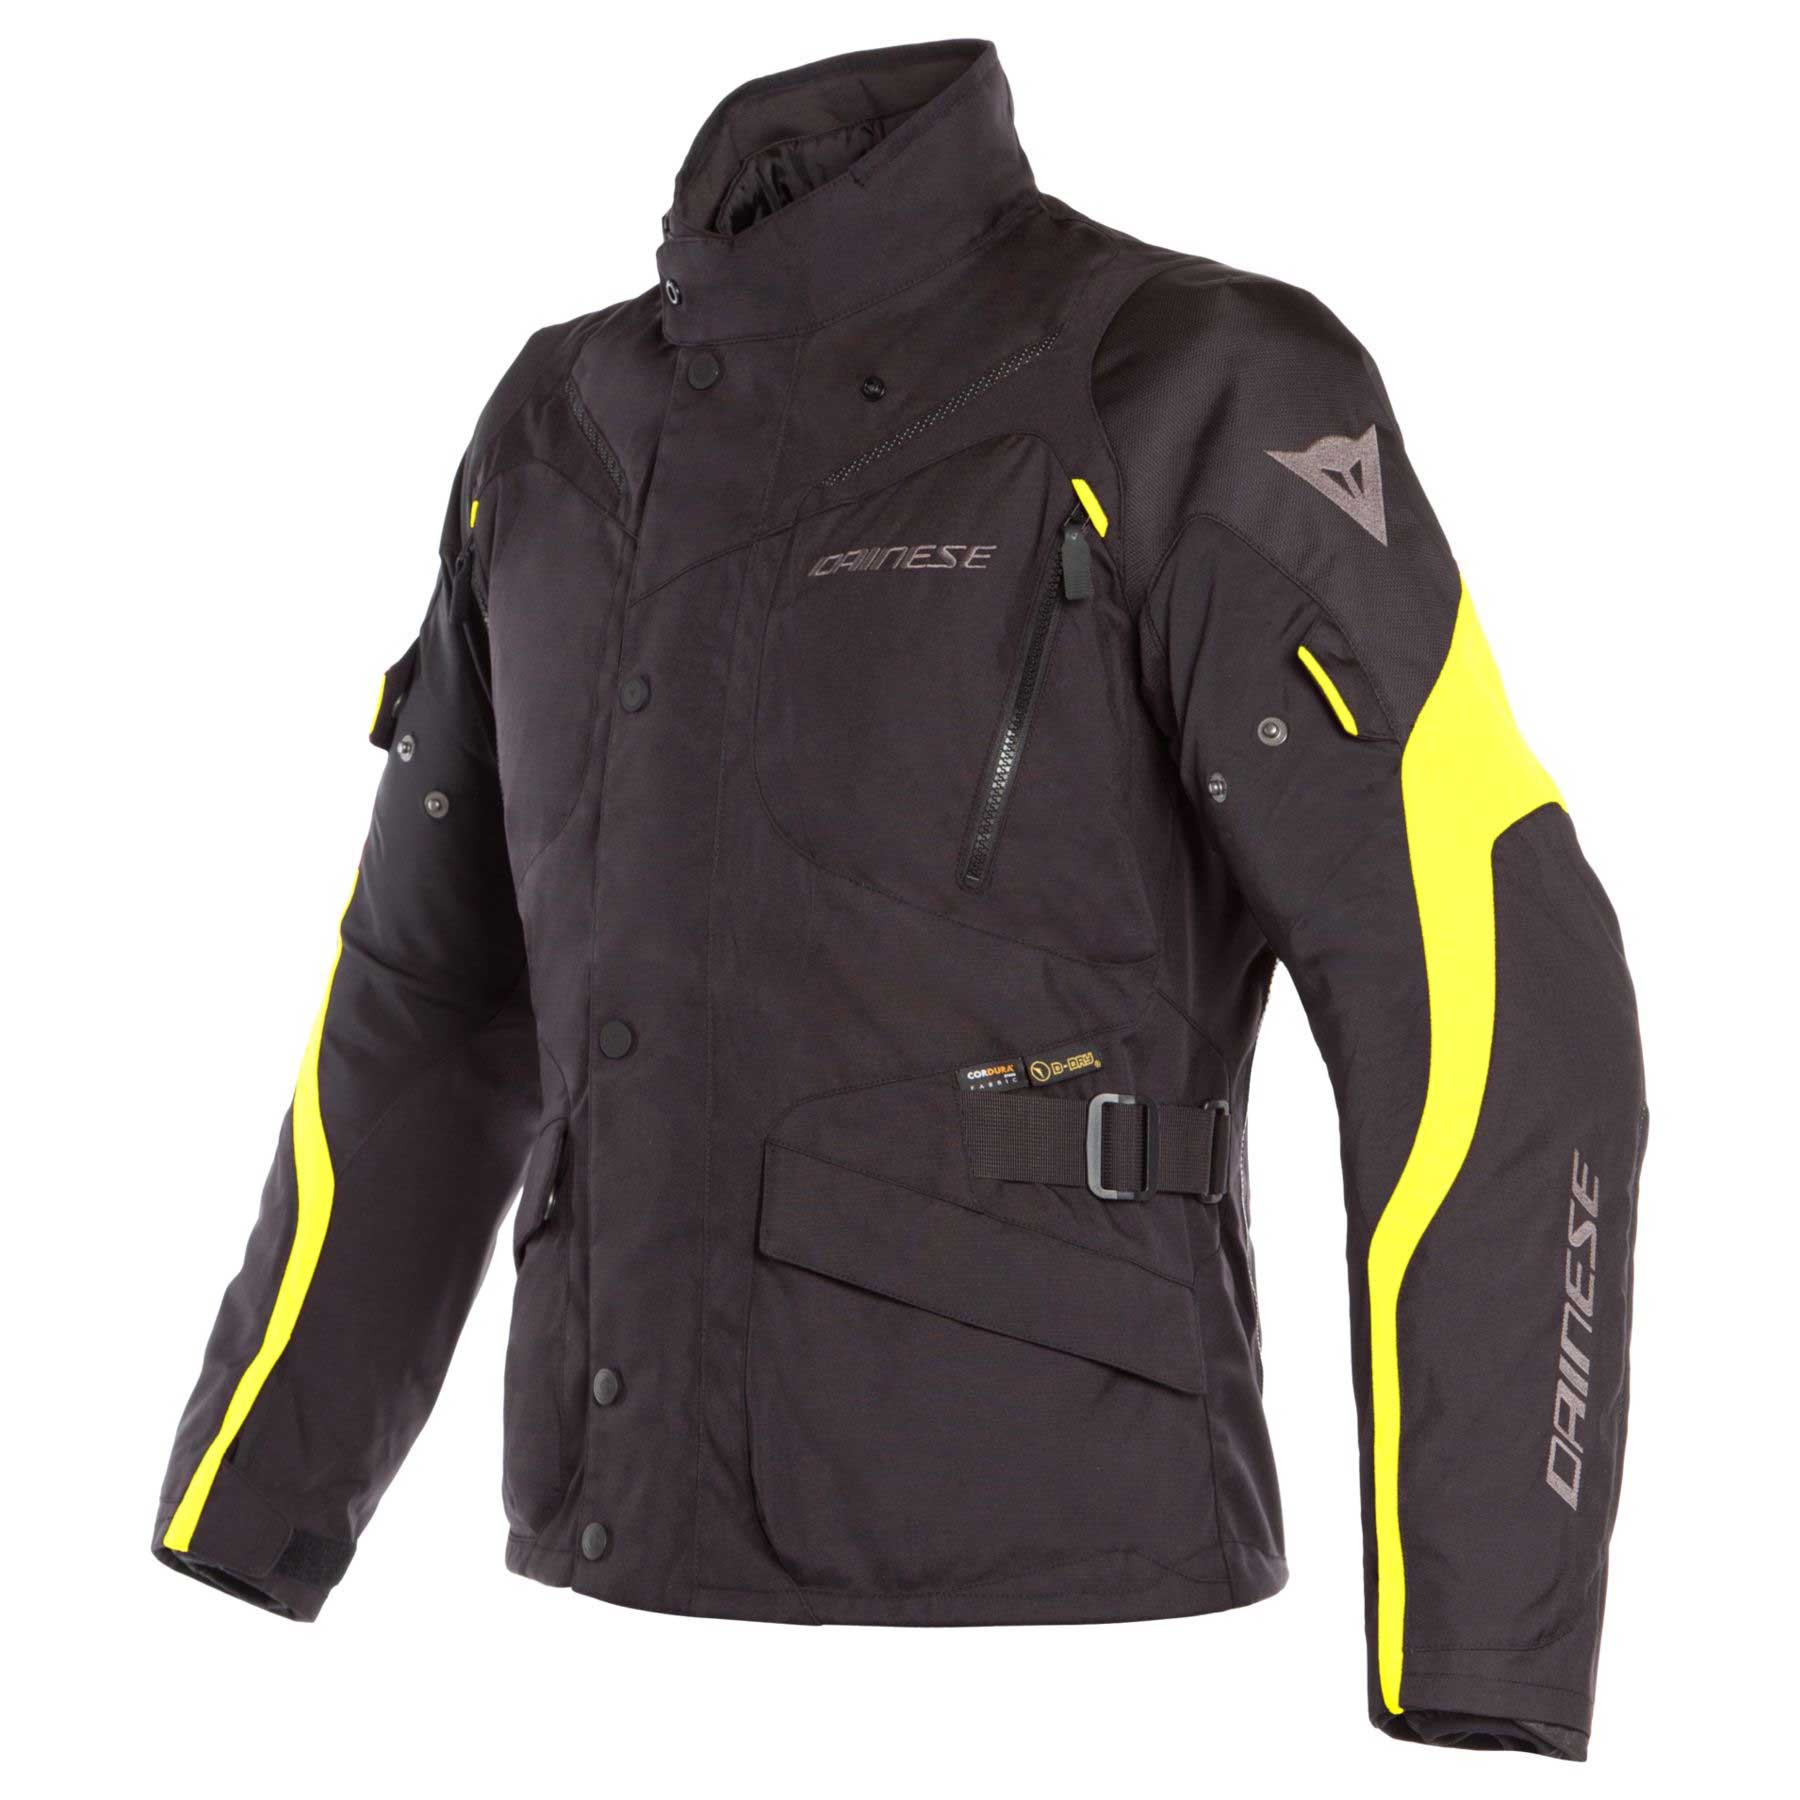 Dainese Giacca Tempest 2 D-dry Nero Giallo Fluo